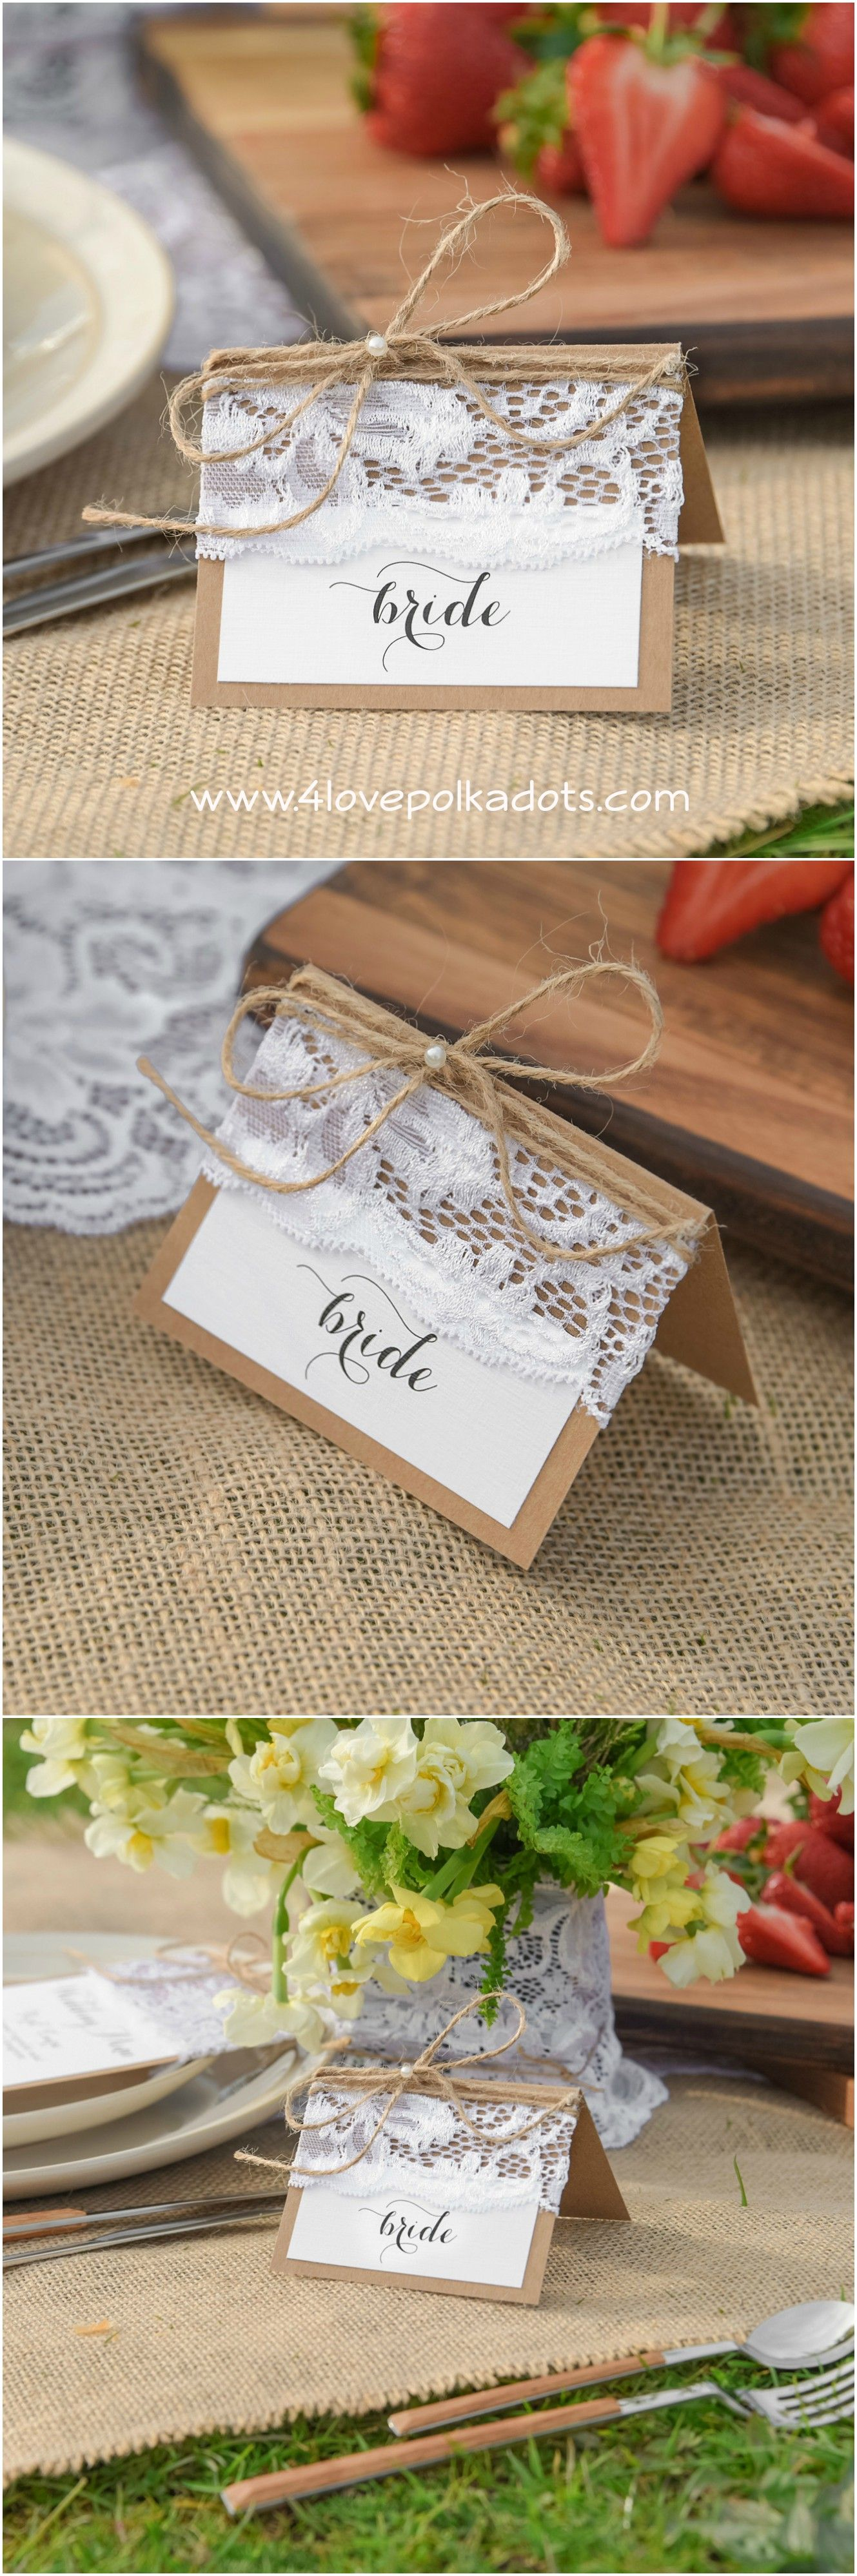 Rustic place card #4lovepolkadots #rusticwedding #rusticplacecard #placecards #weddingideas